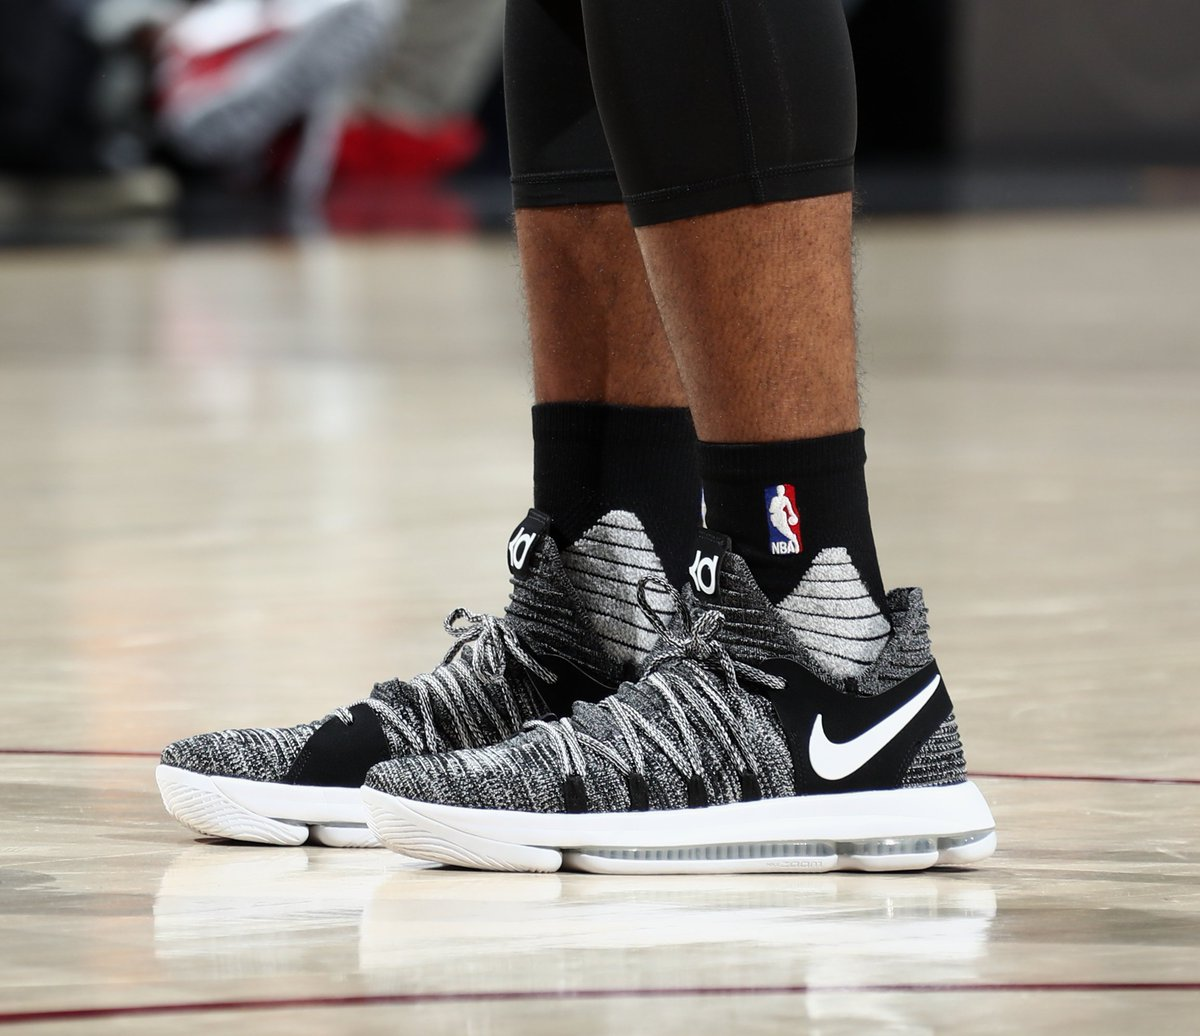 058bf2d43860 ian clark in the nike zoom kd 10 oreo for game 3 vs cleveland nbafinals